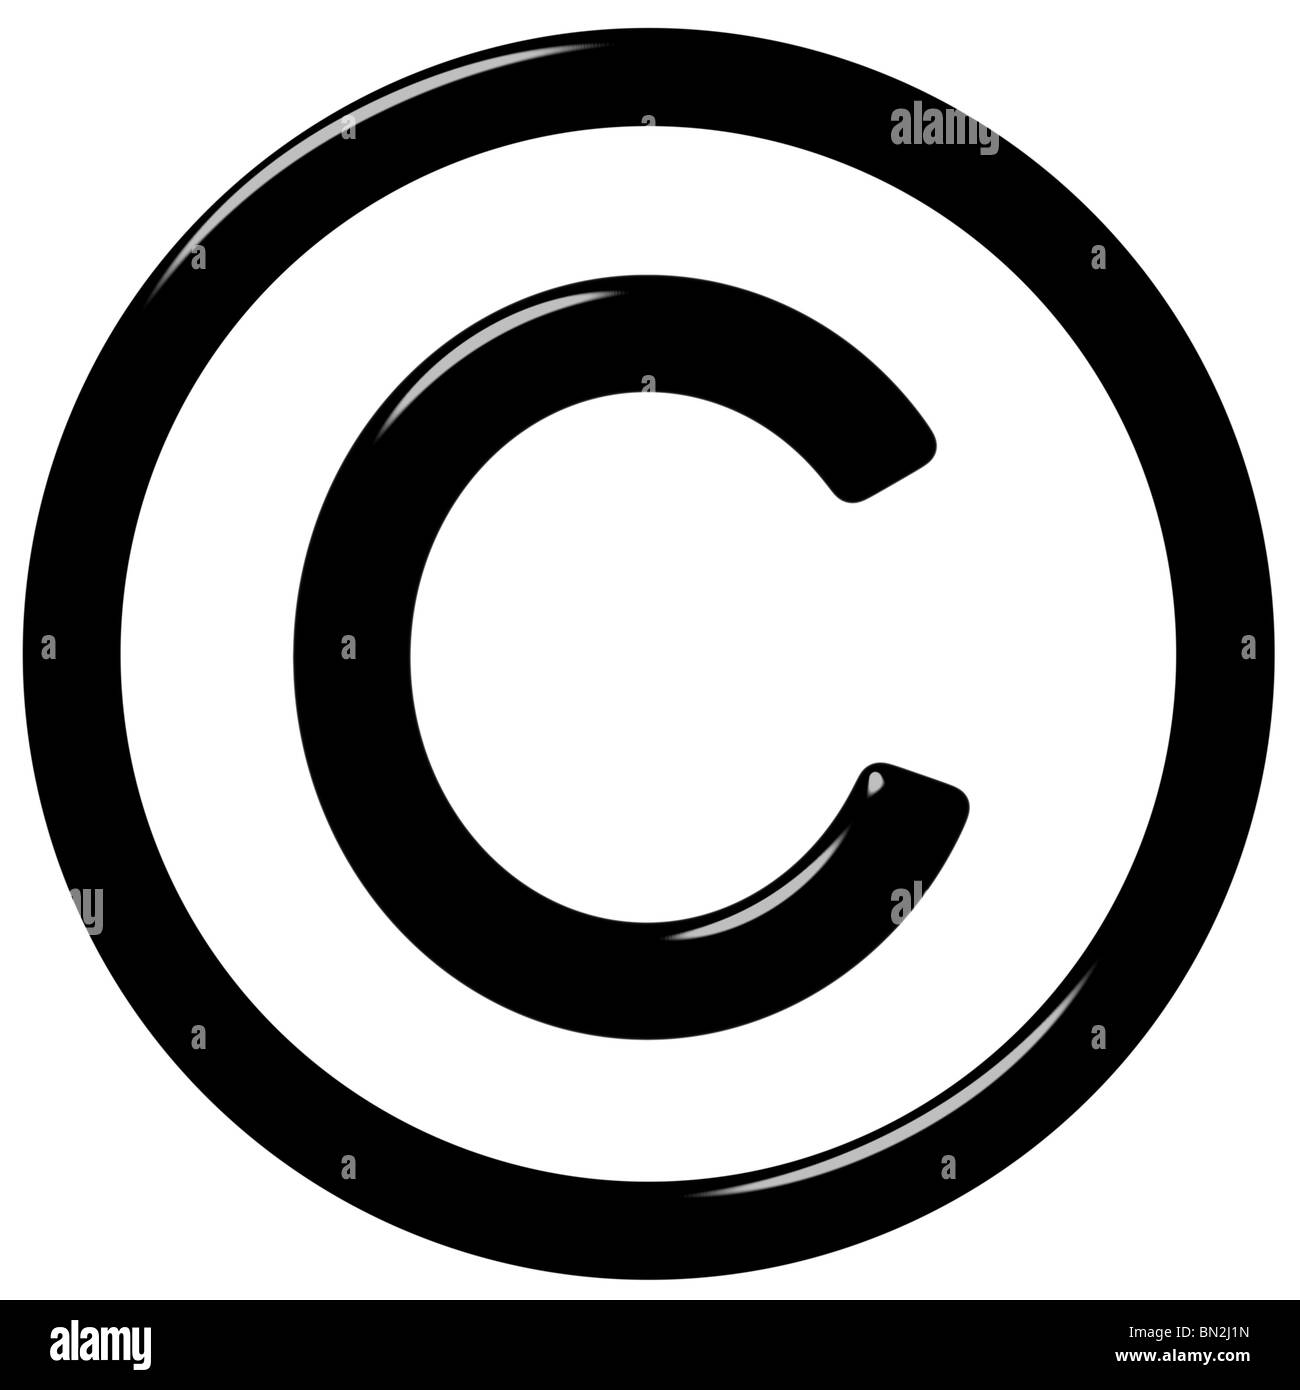 3d copyright symbol stock photo royalty free image 30176209 alamy 3d copyright symbol biocorpaavc Gallery